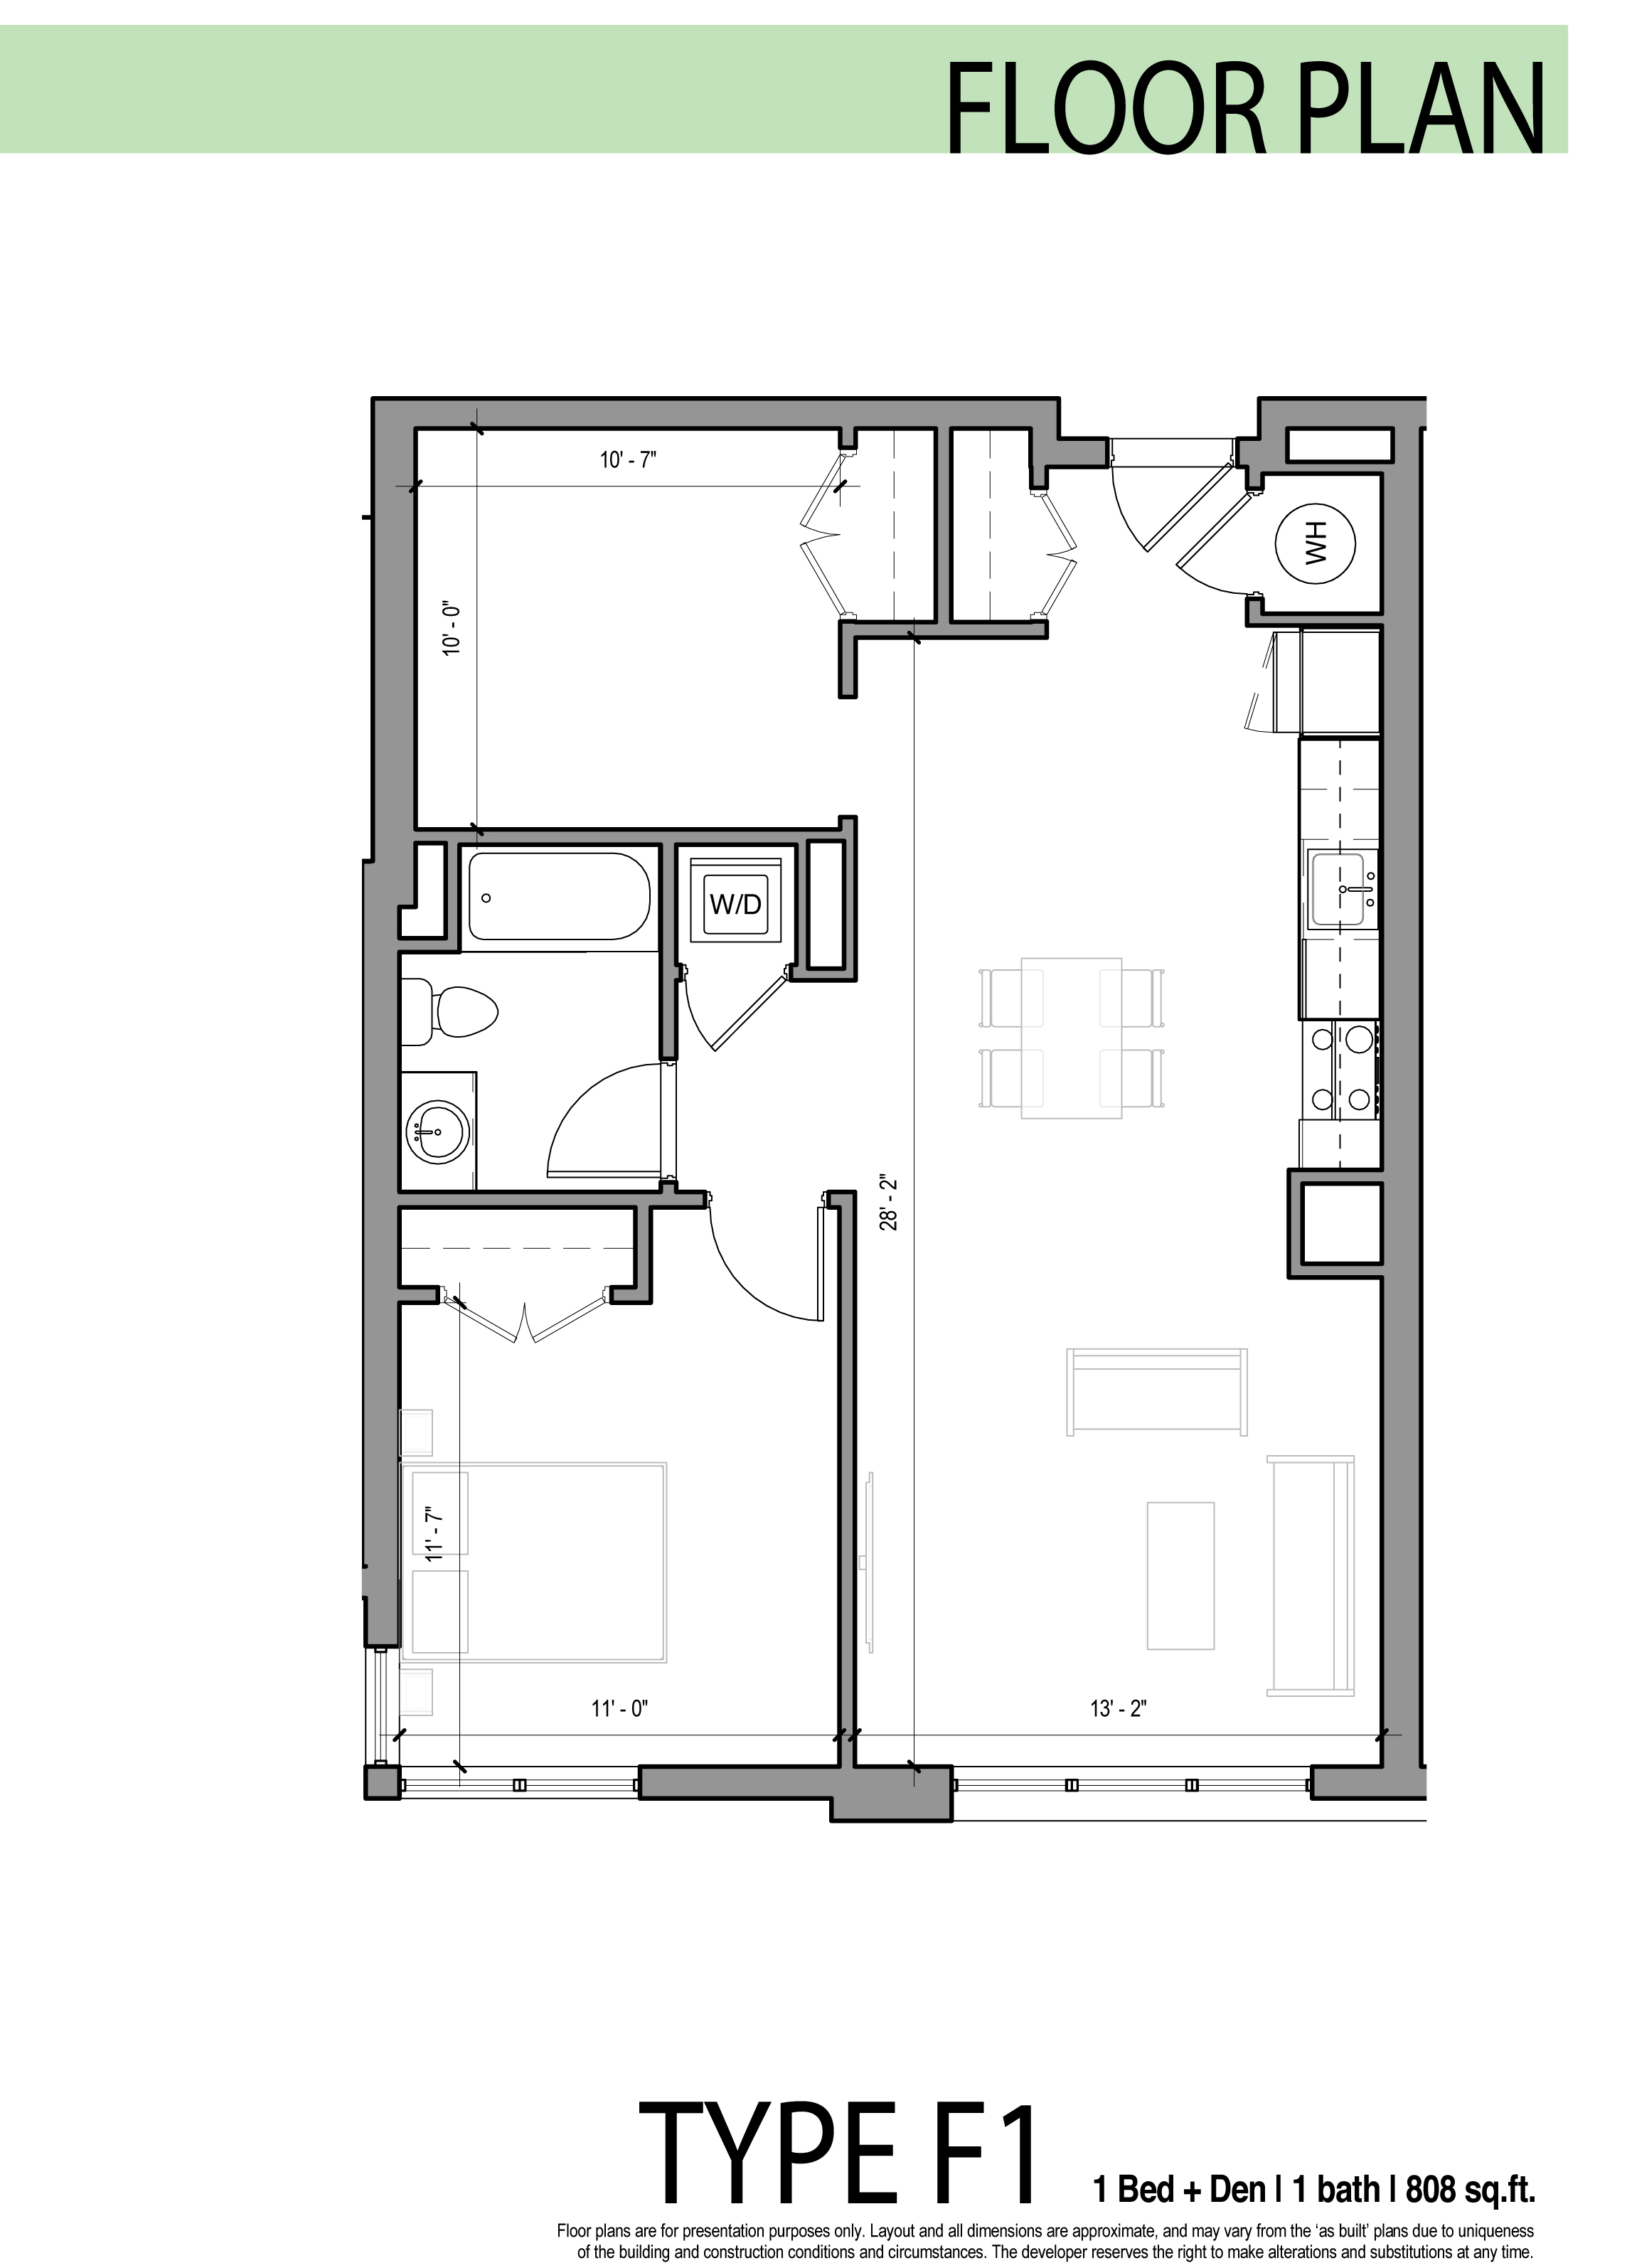 Edge allston floor plans - Planning the studio apartment floor plans ...